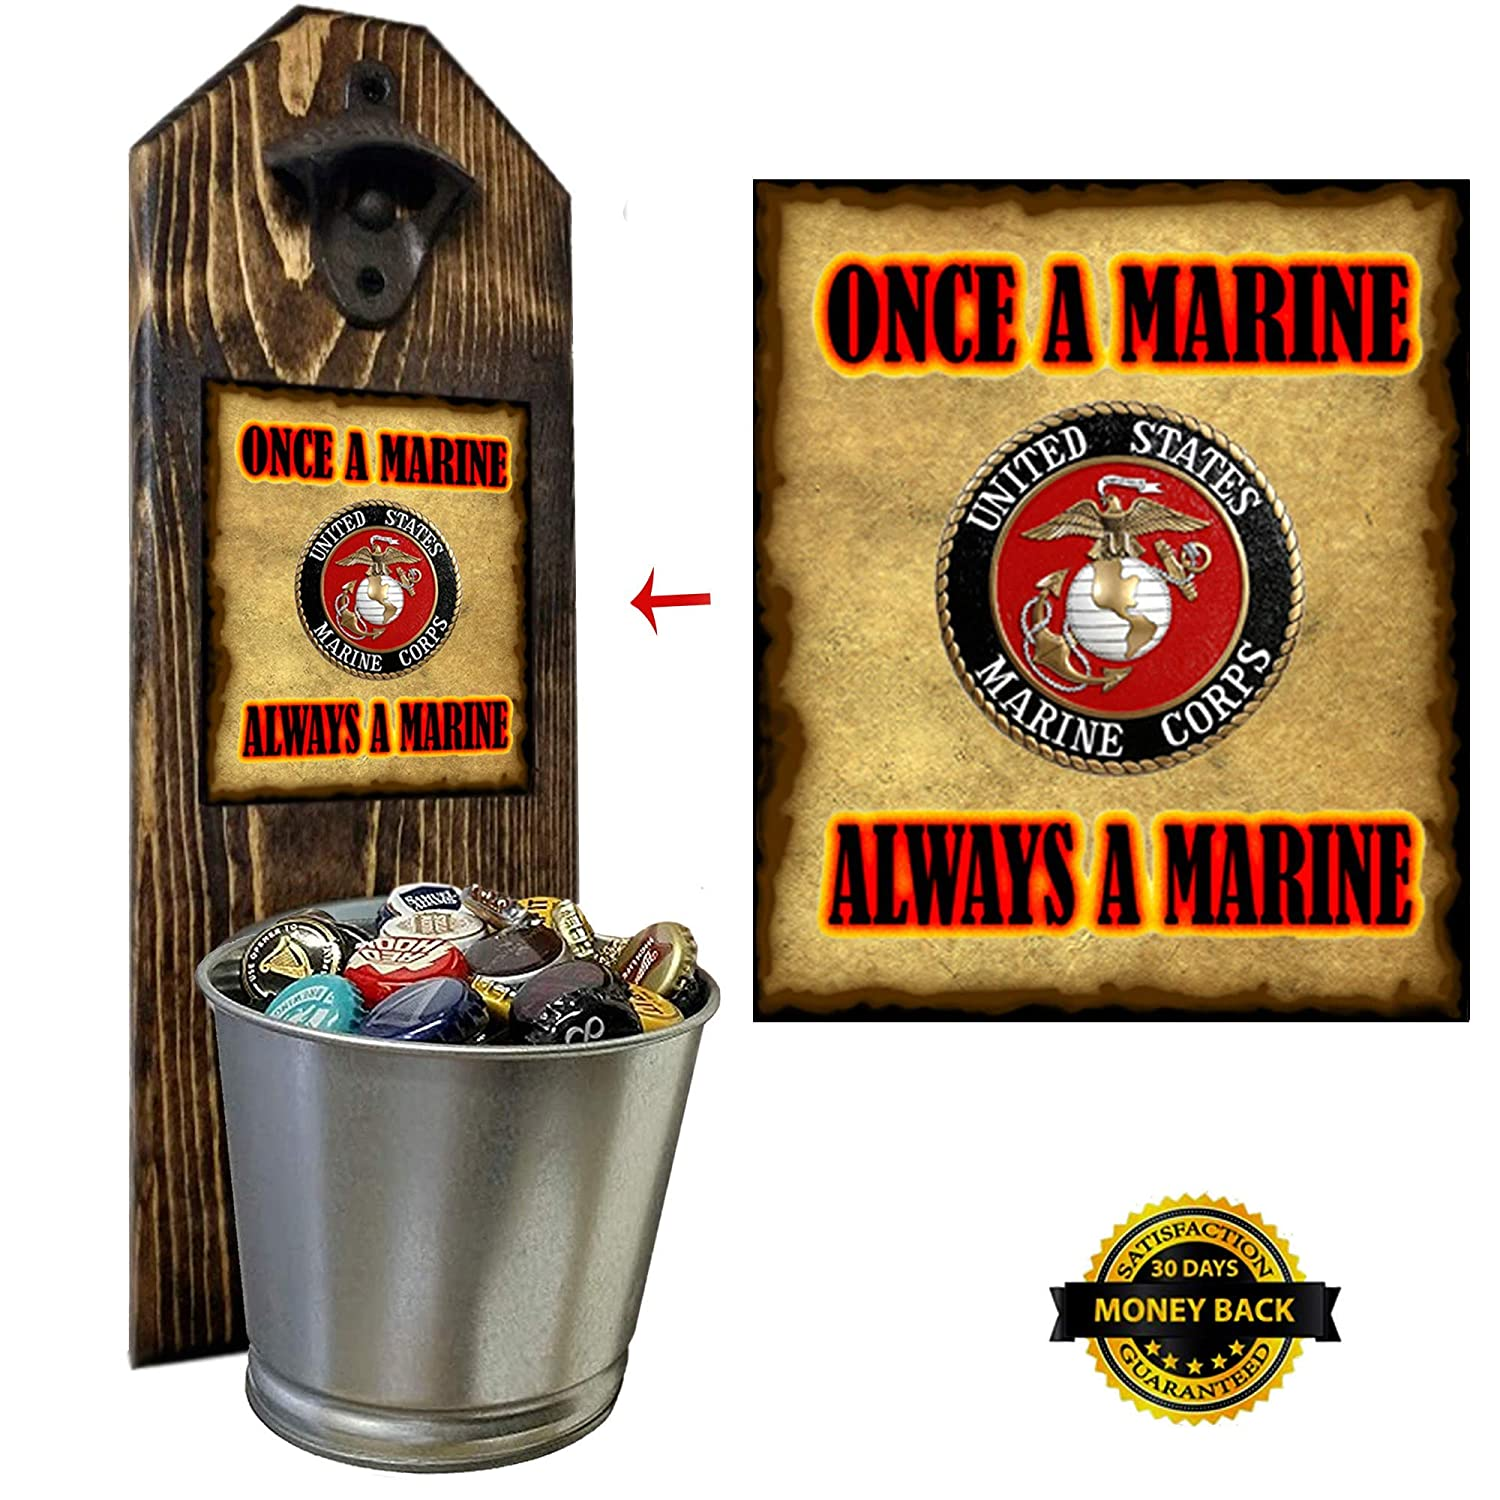 Handcrafted by a Vet Semper Fi! Rustic Cast Iron Opener and Galvanized Bucket Wall Mounted Great Veteran Gift 100/% Solid Pine 3//4 Thick Marine Corps Bottle Opener and Cap Catcher